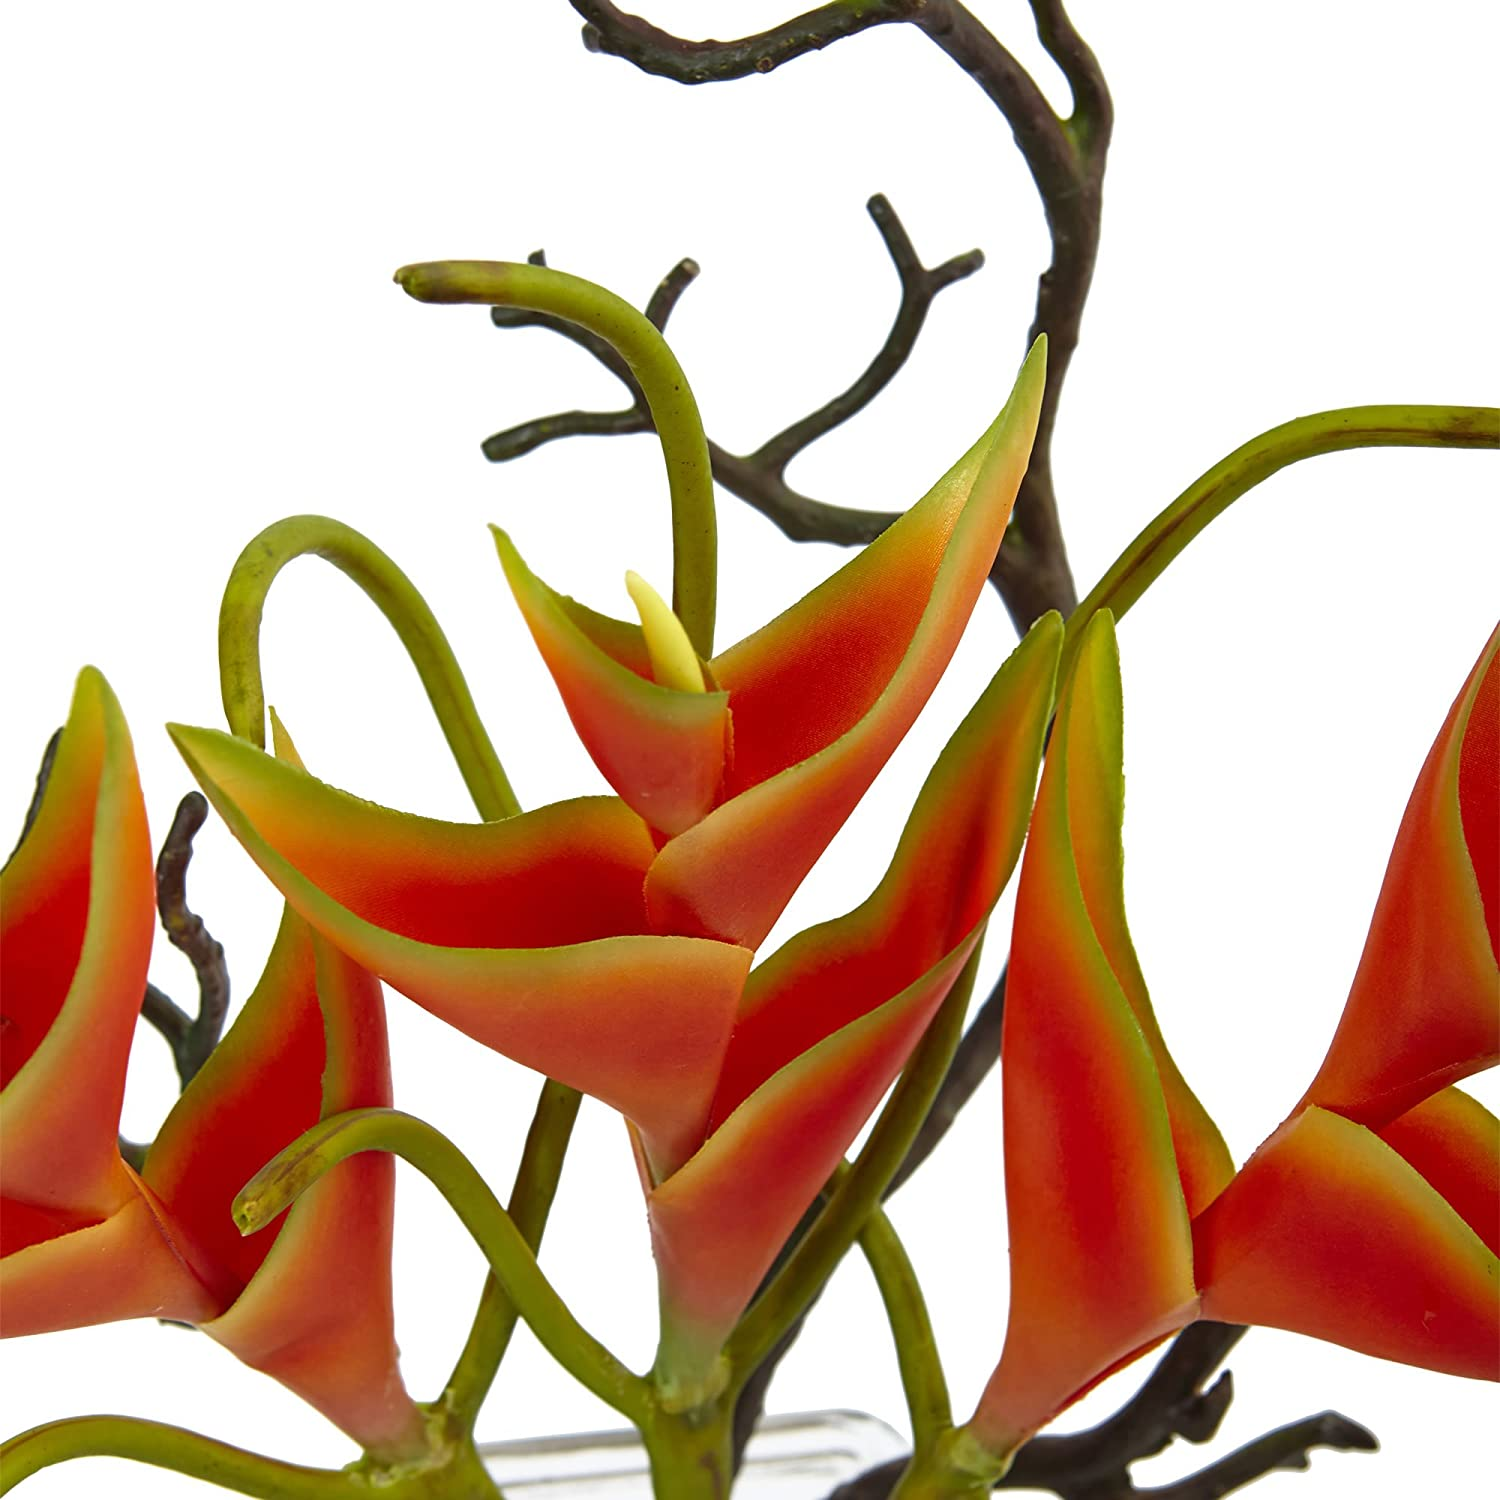 Nearly Natural 1454 Heliconia in Glass Vase